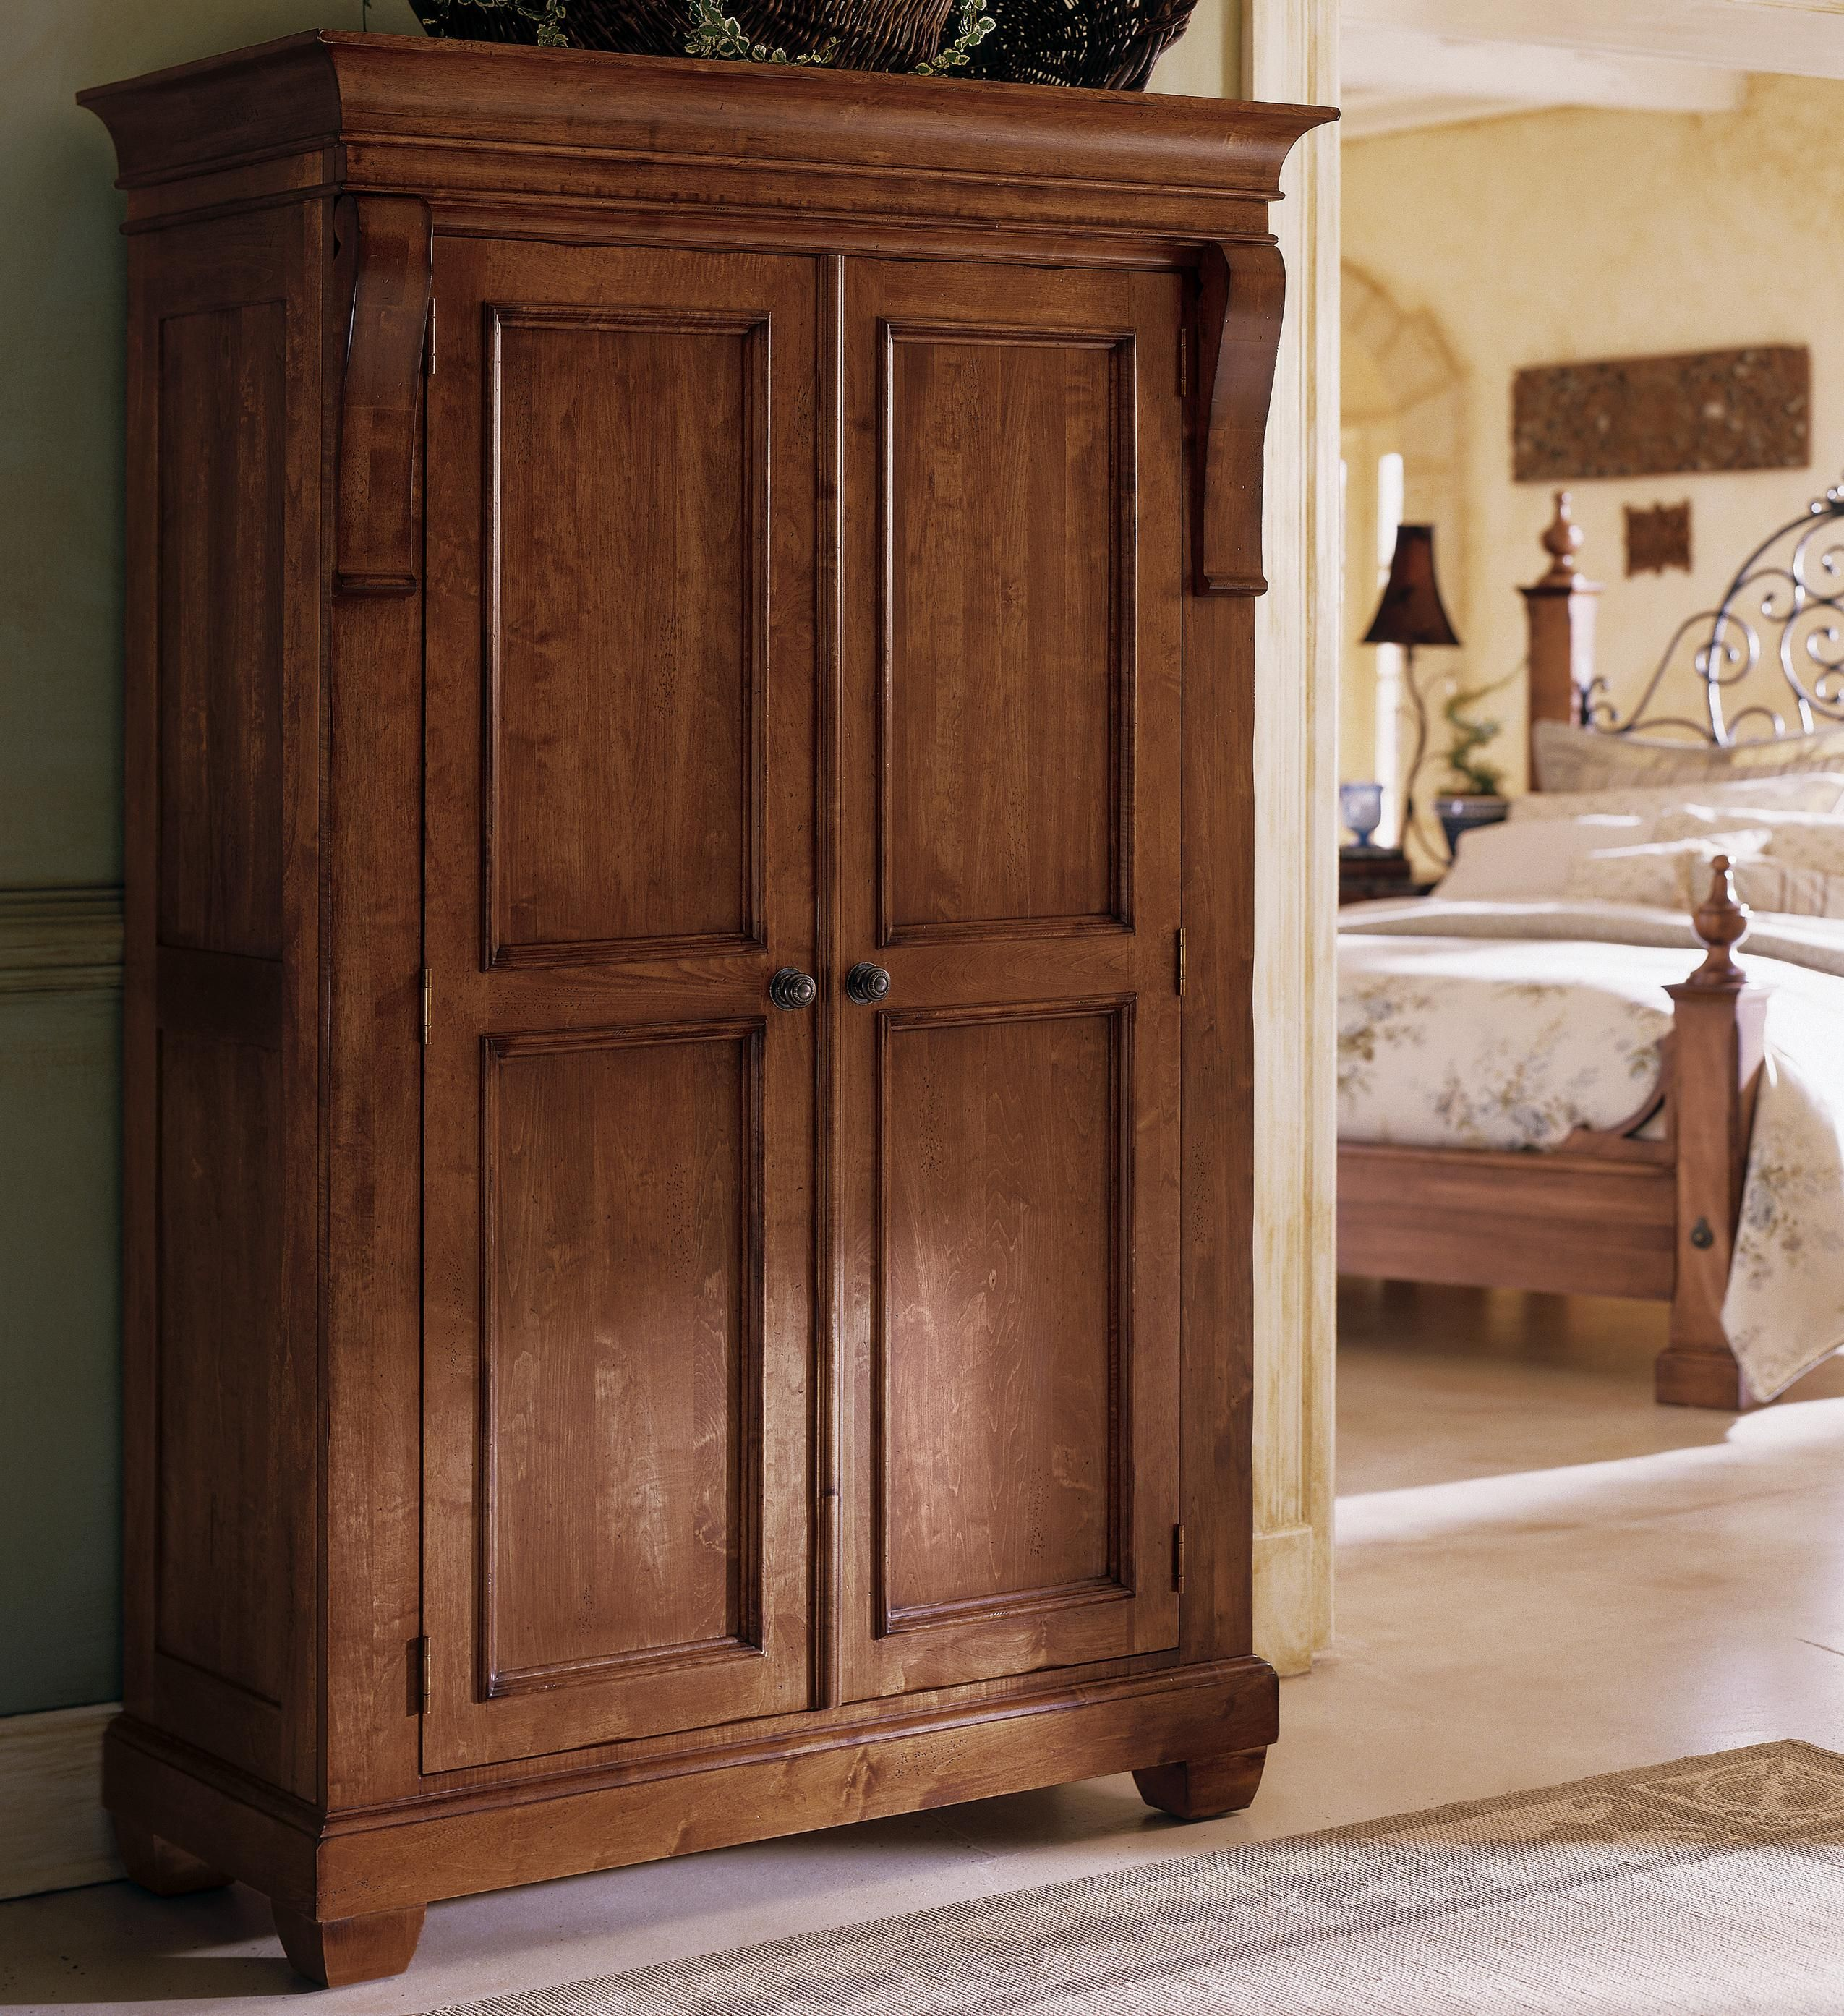 For The Master Bedroom. An Old Wooden Cabinet Instead Of Clean Wardrobes  Kincaid Tuscano Solid Wood Wardrobe